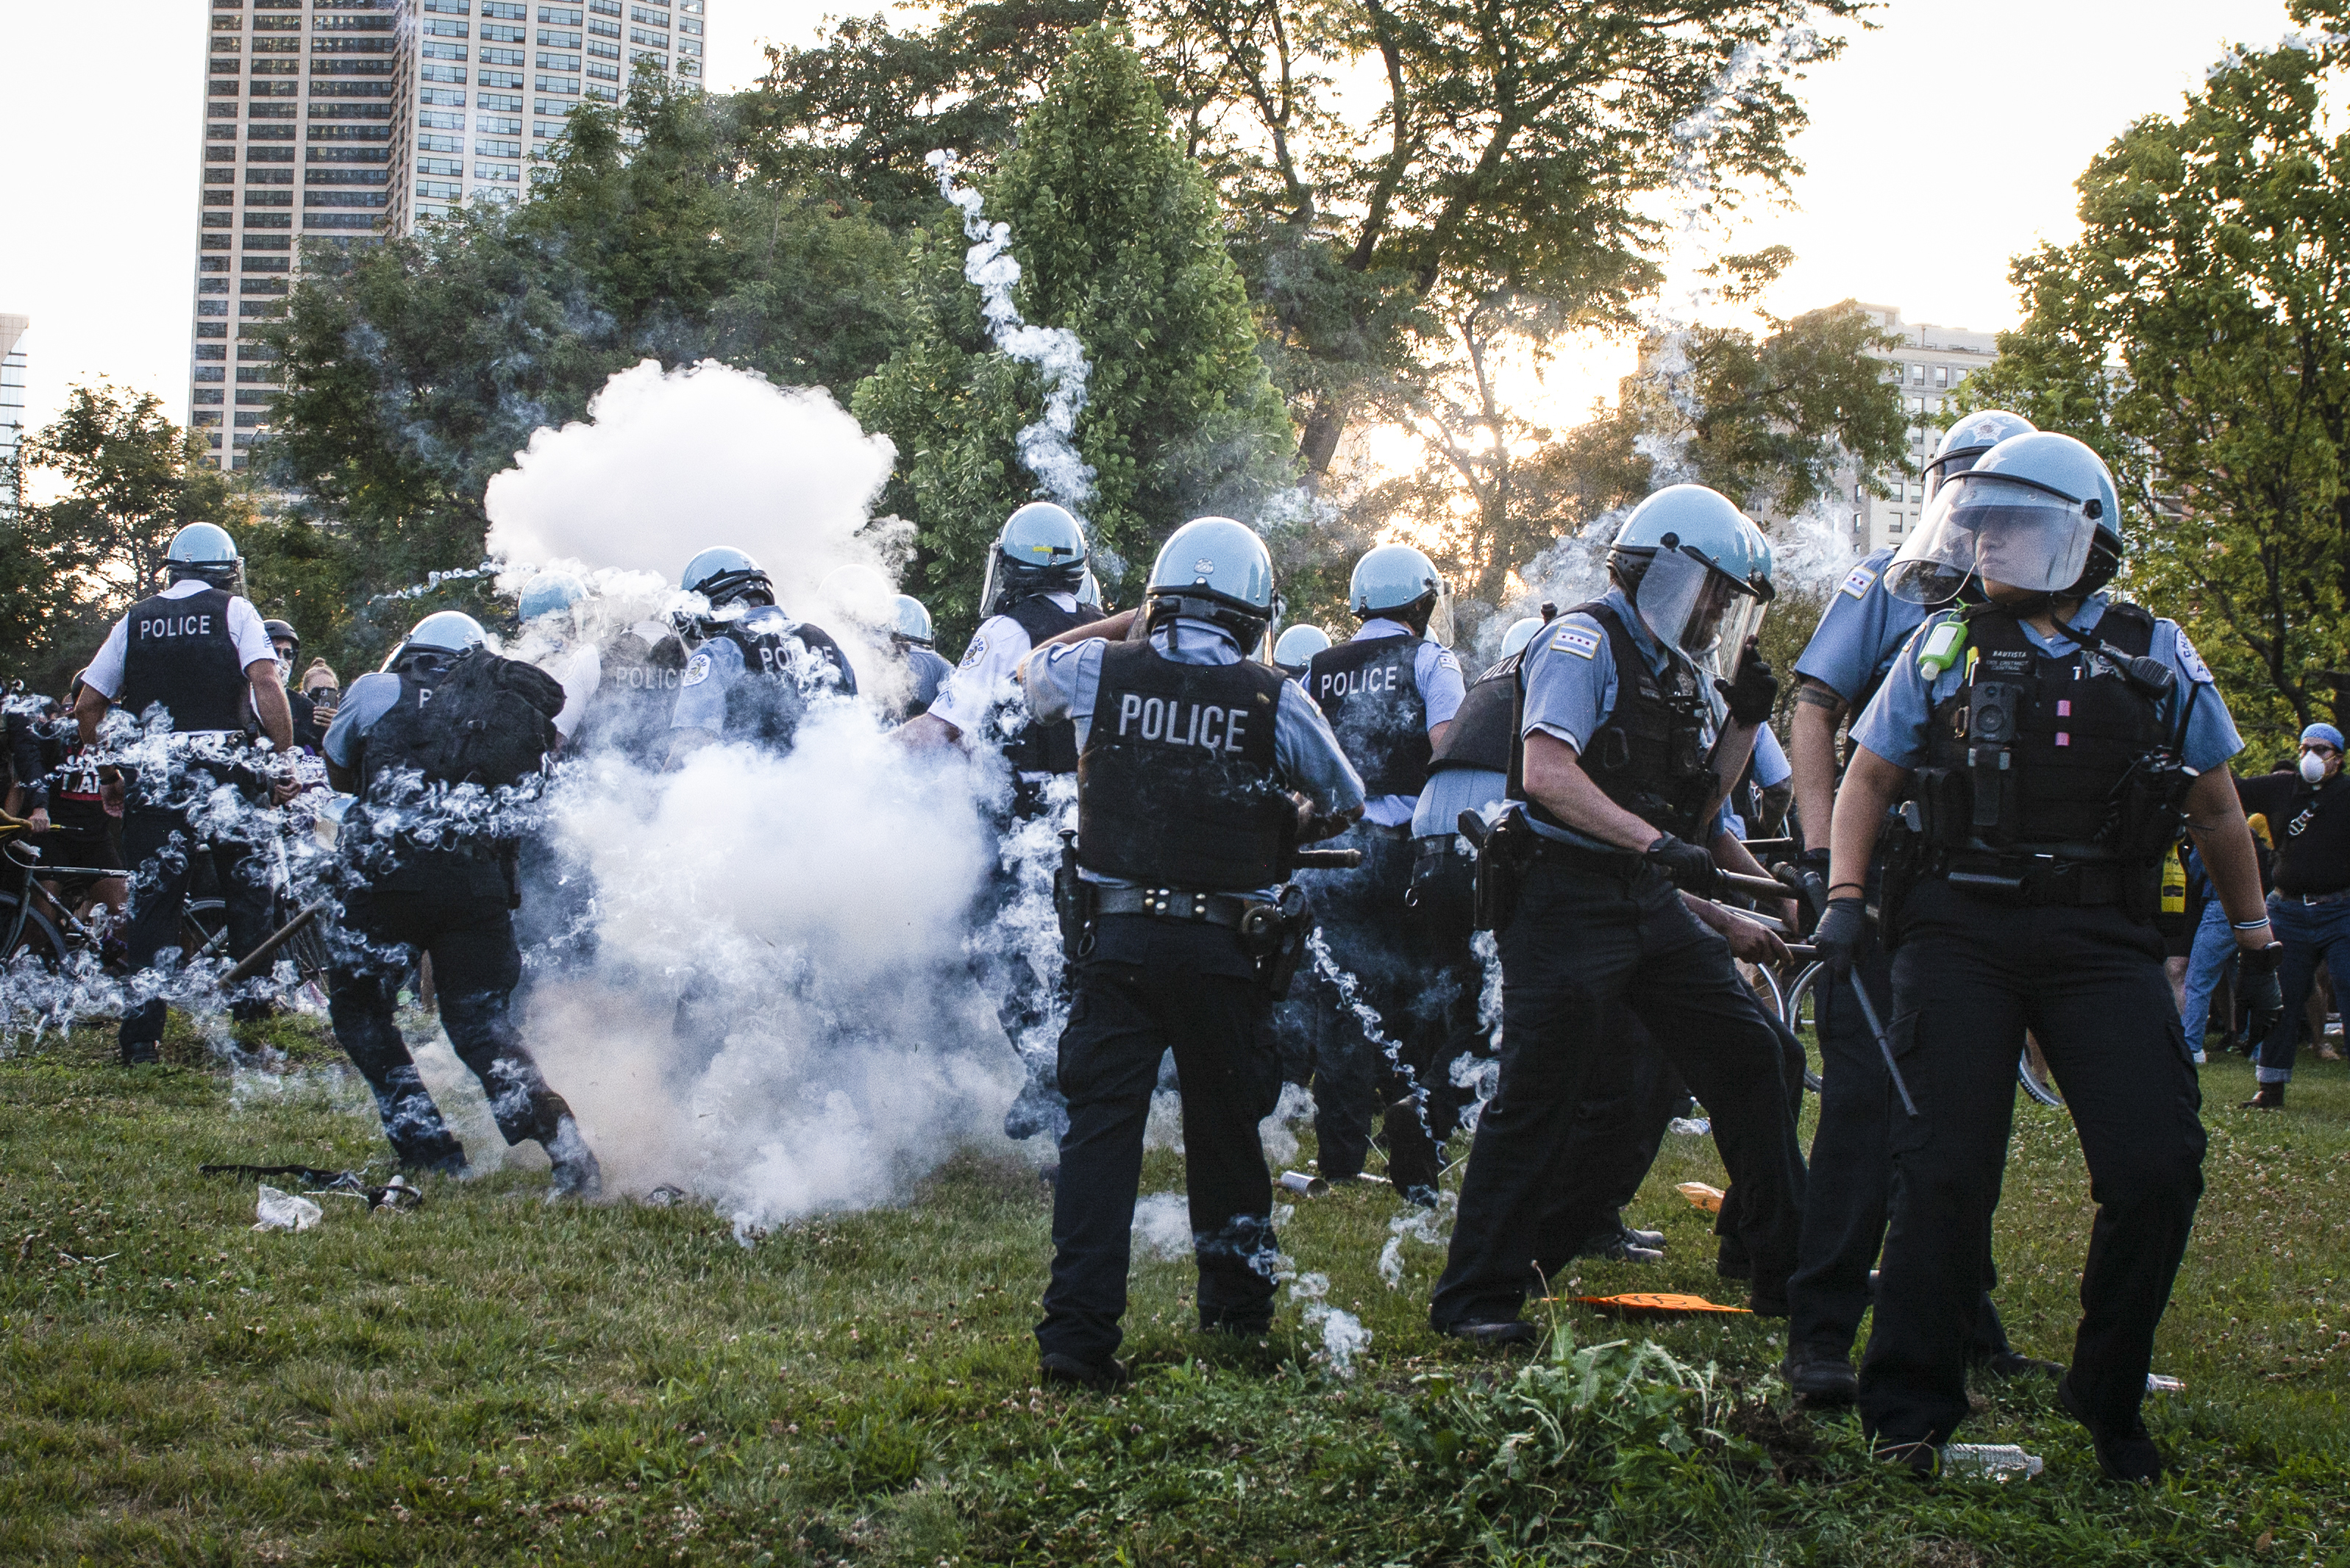 Hundreds of protesters surrounded the Christopher Columbus statue in Grant Park on Friday. They attempted to pull the statue down and many battled with Chicago Police.